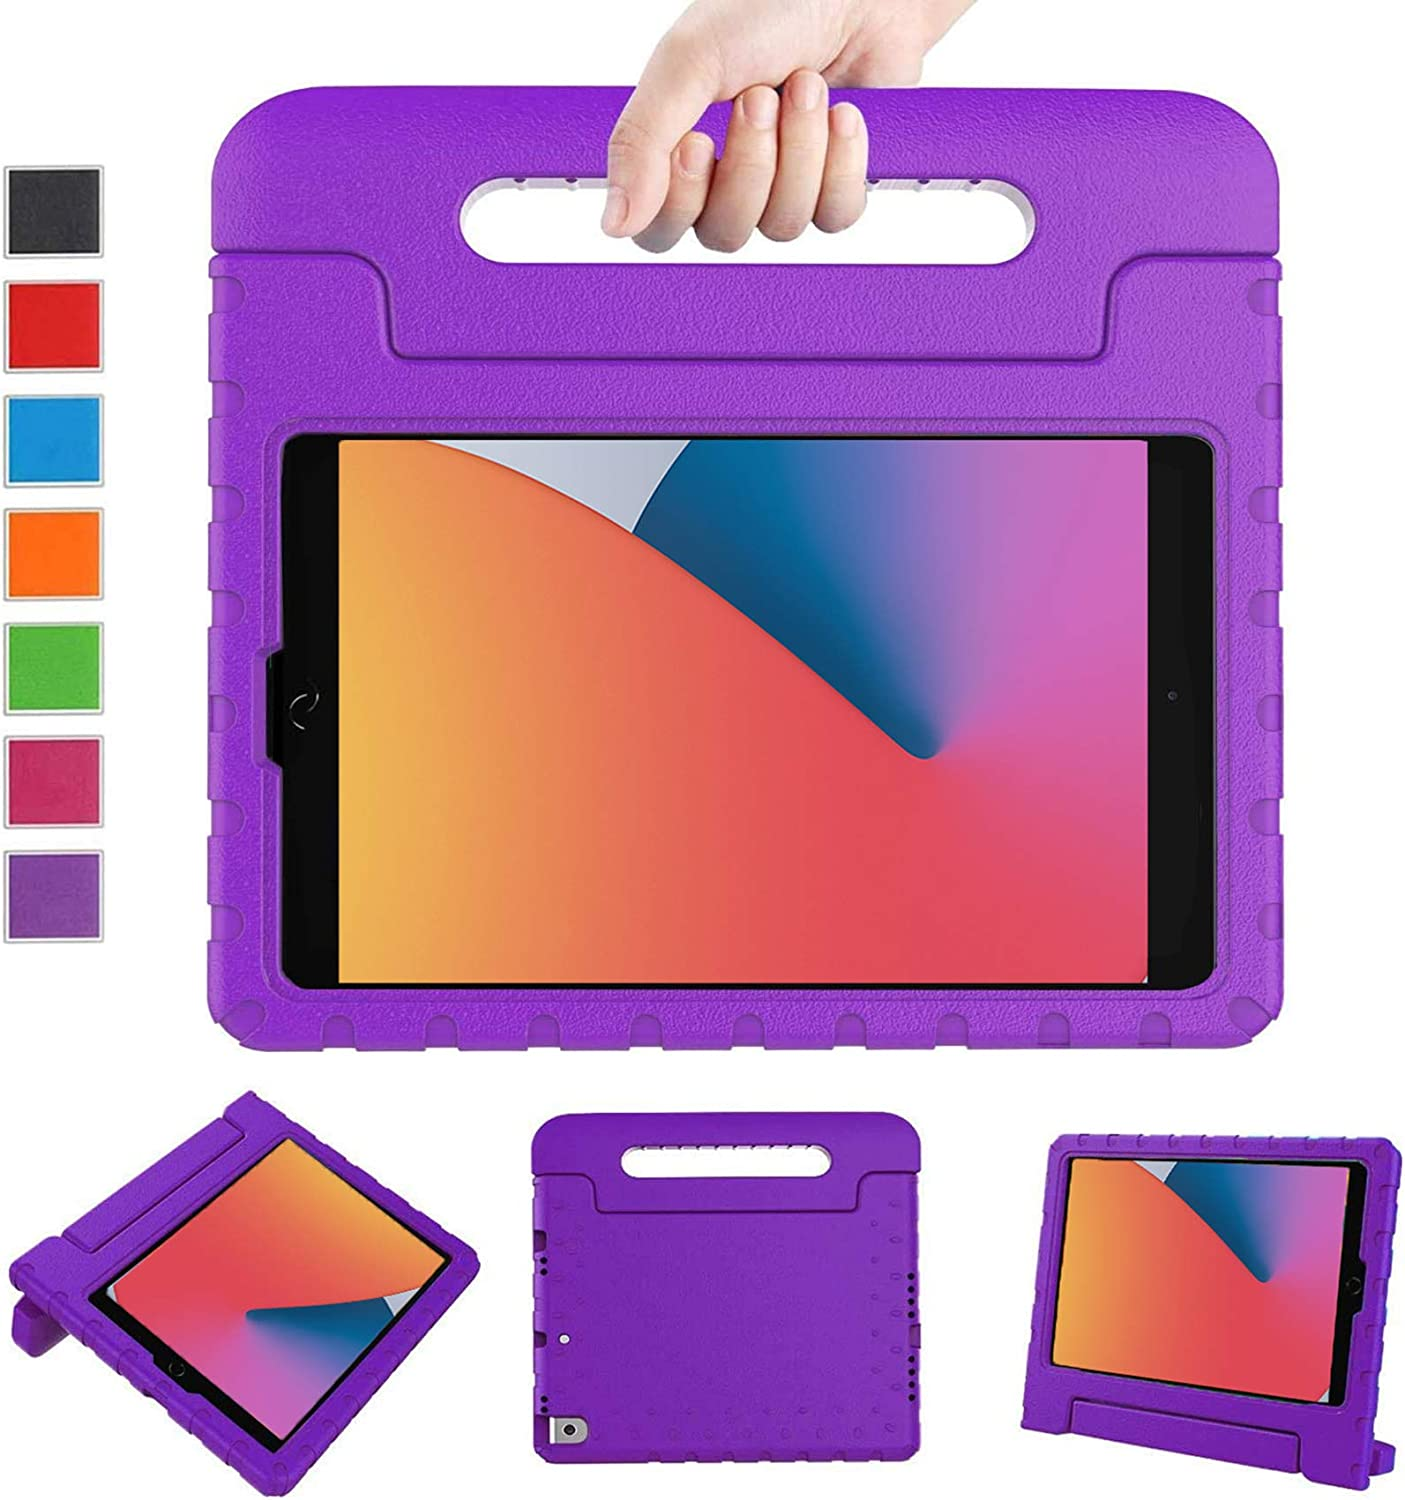 LTROP New iPad 8th Generation Case 2020, iPad 10.2 Case, iPad 7th Generation Case for Kids - Shockproof Light Weight Handle Stand Kids Case for 10.2 inch iPad 8th Gen 2020/ 7th Gen 2019/ Air 3, Purple